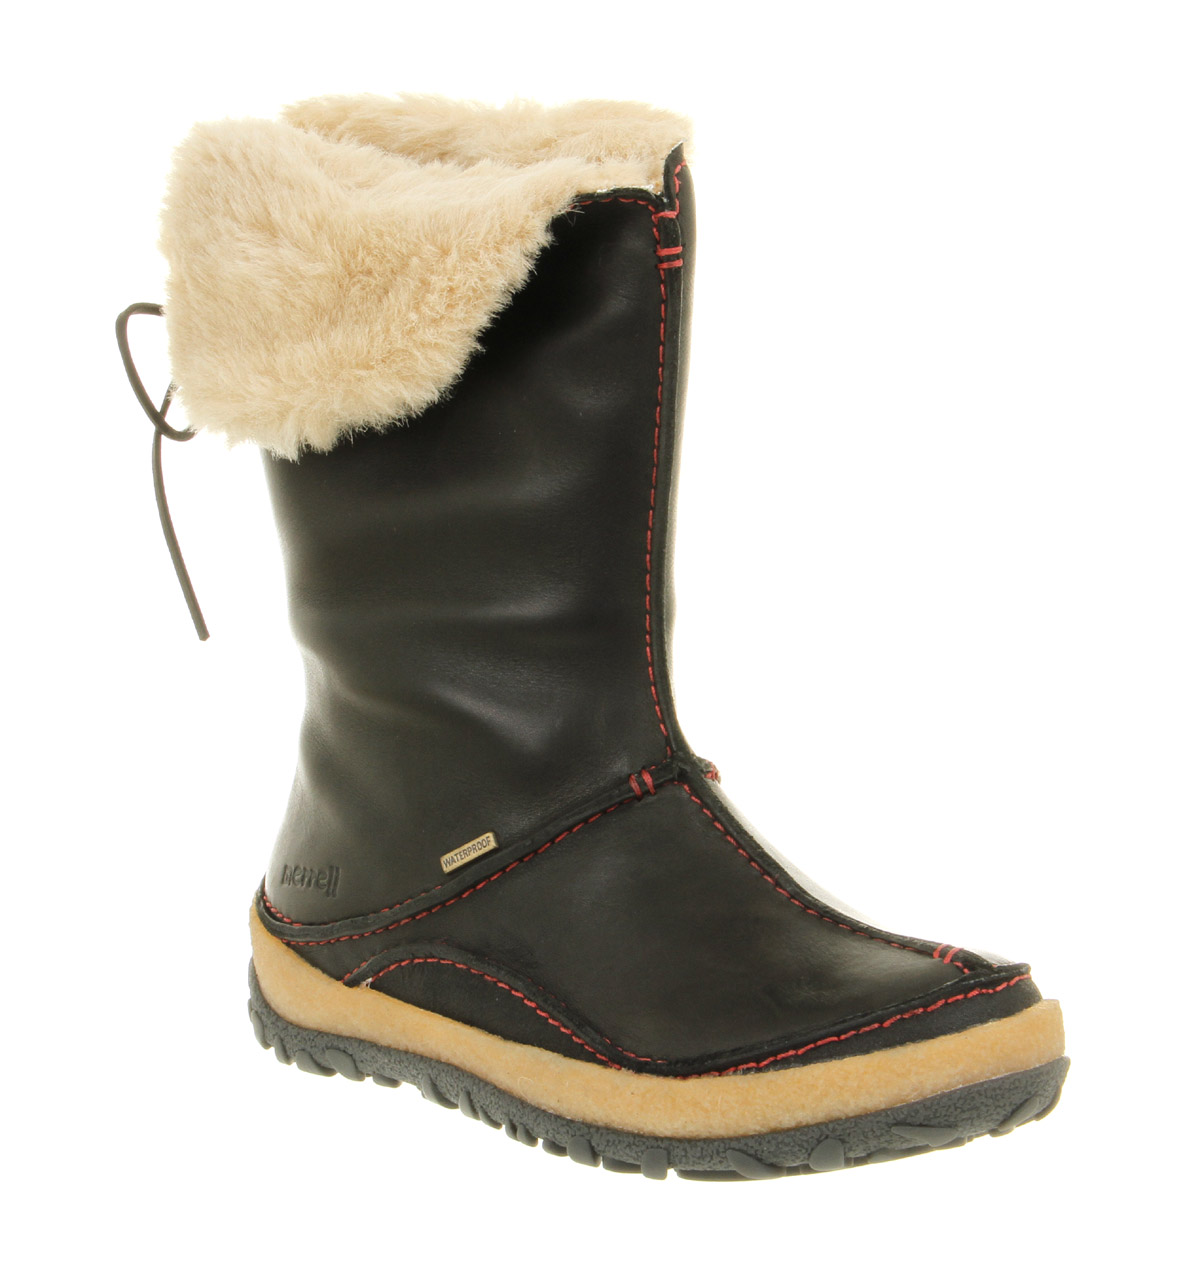 Women's leather snow boots – Jackets photo blog